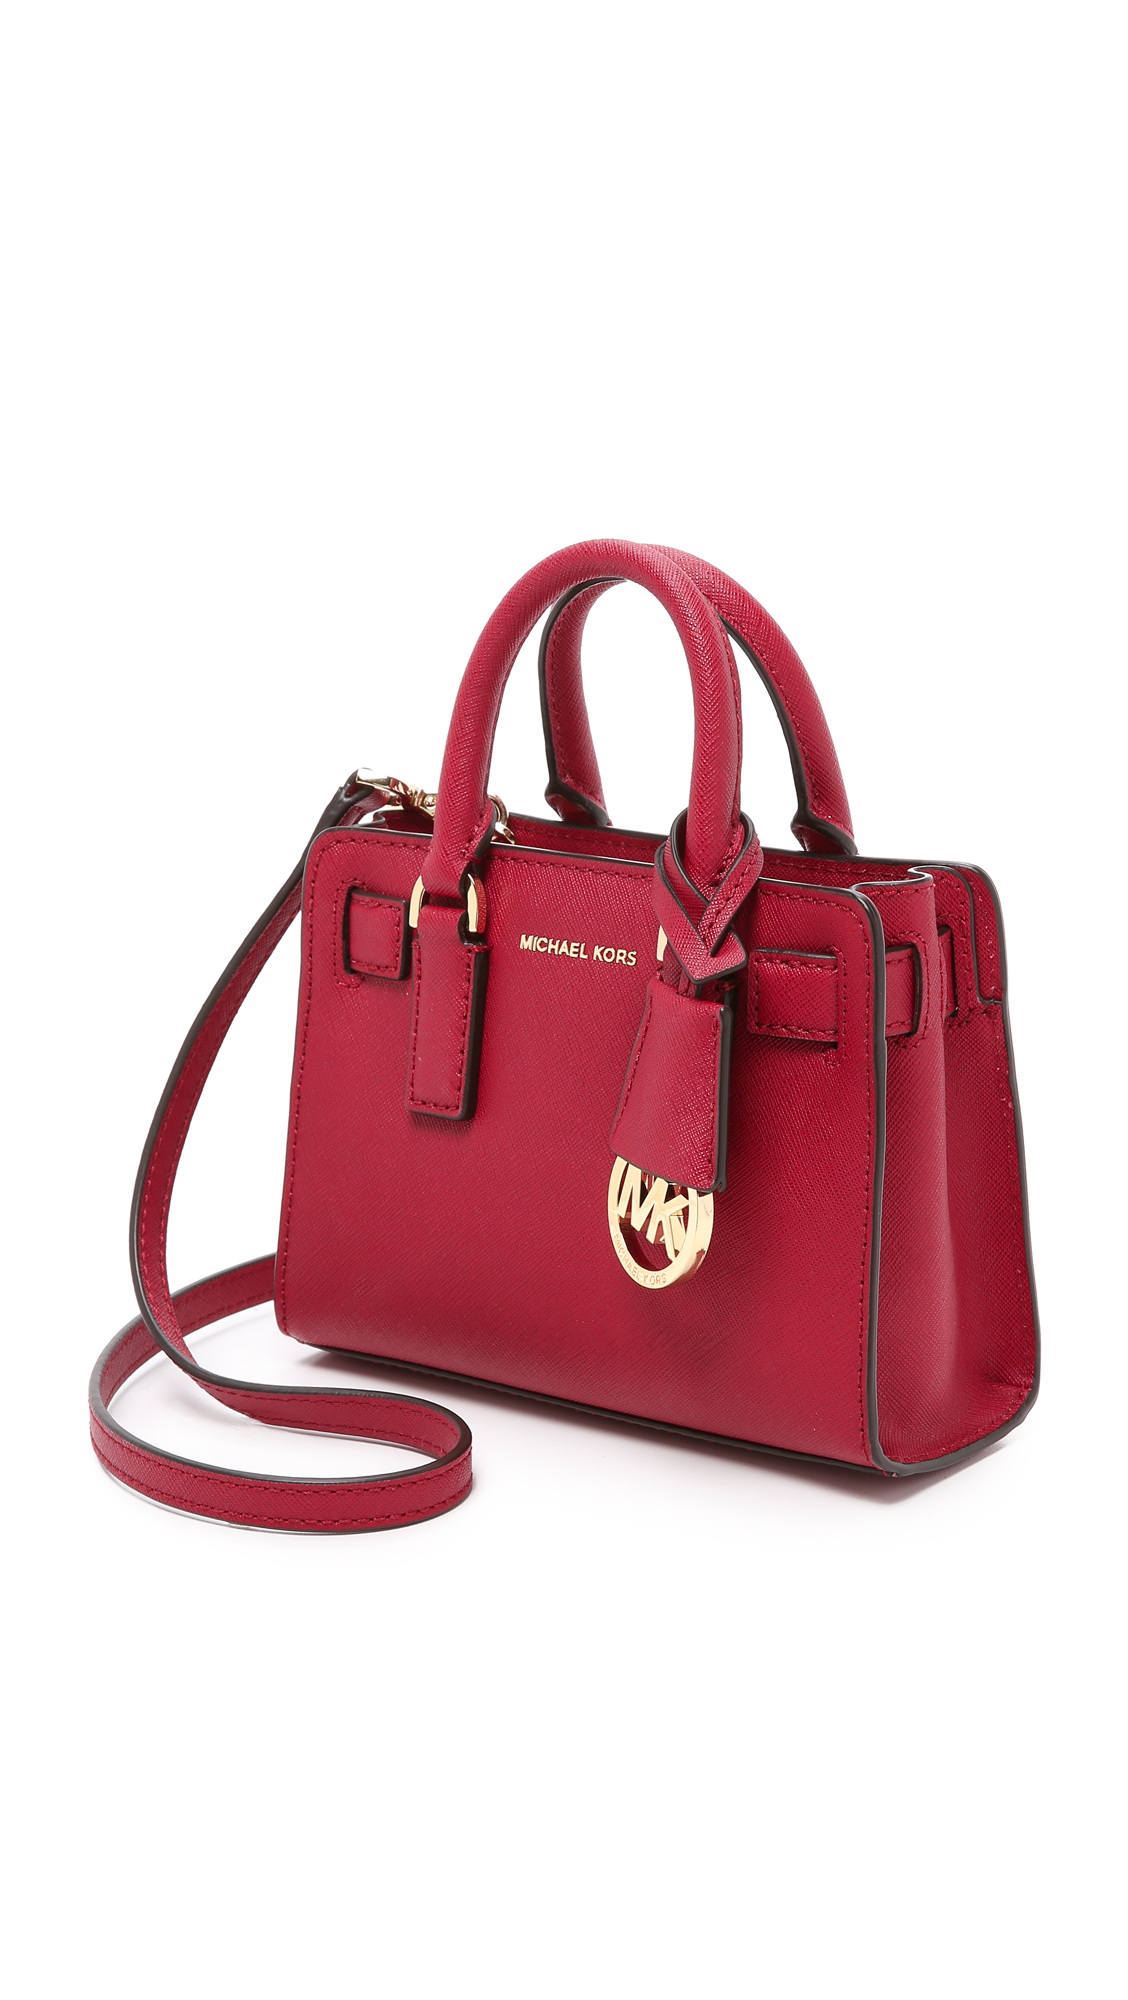 Michael michael kors Dillon Extra Small Cross Body Bag in Red | Lyst